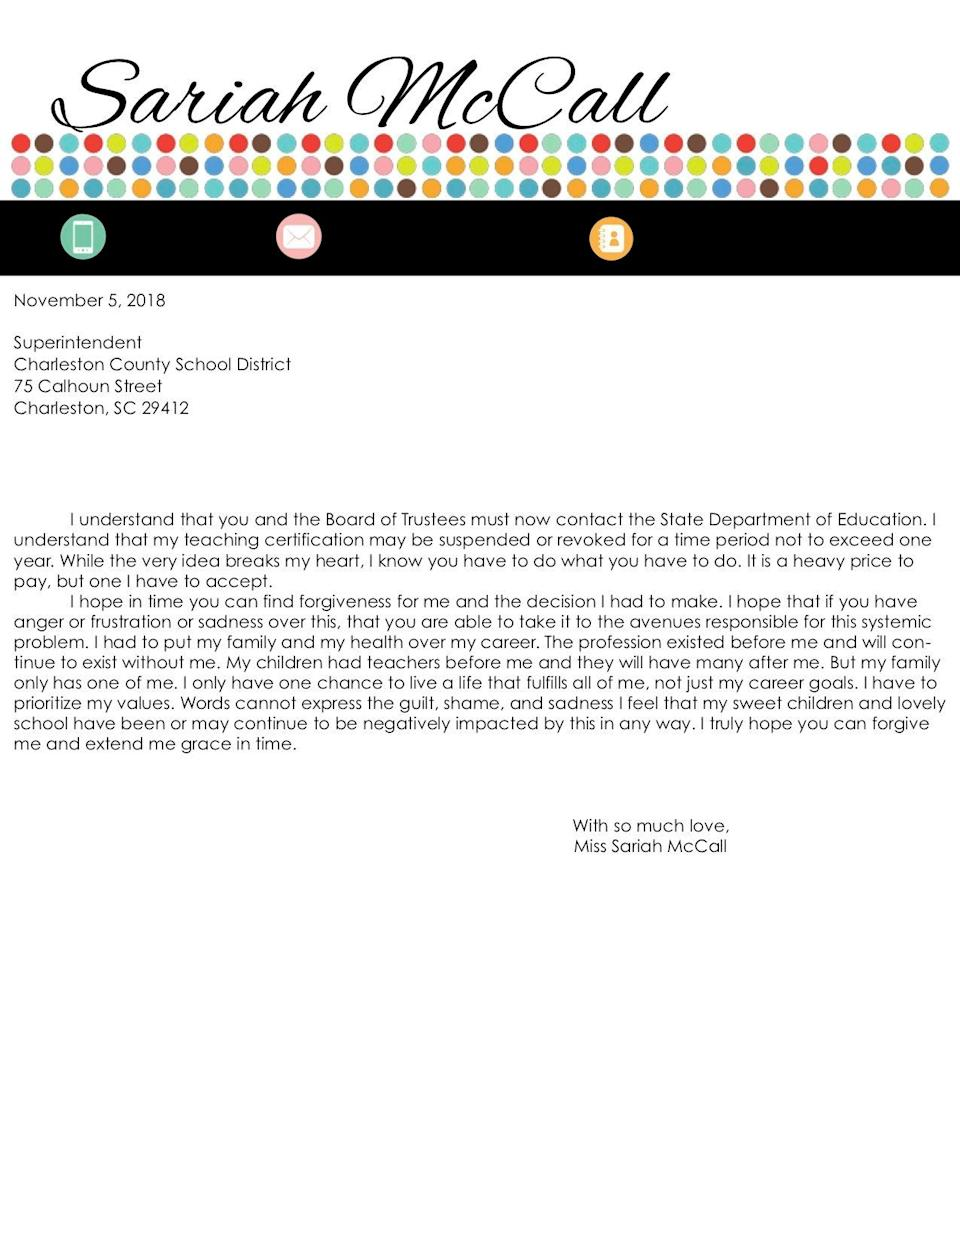 The second page of Sariah McCall's resignation letter addressed to the Charleston County School District Superintendent. (Credit: Sariah McCall)